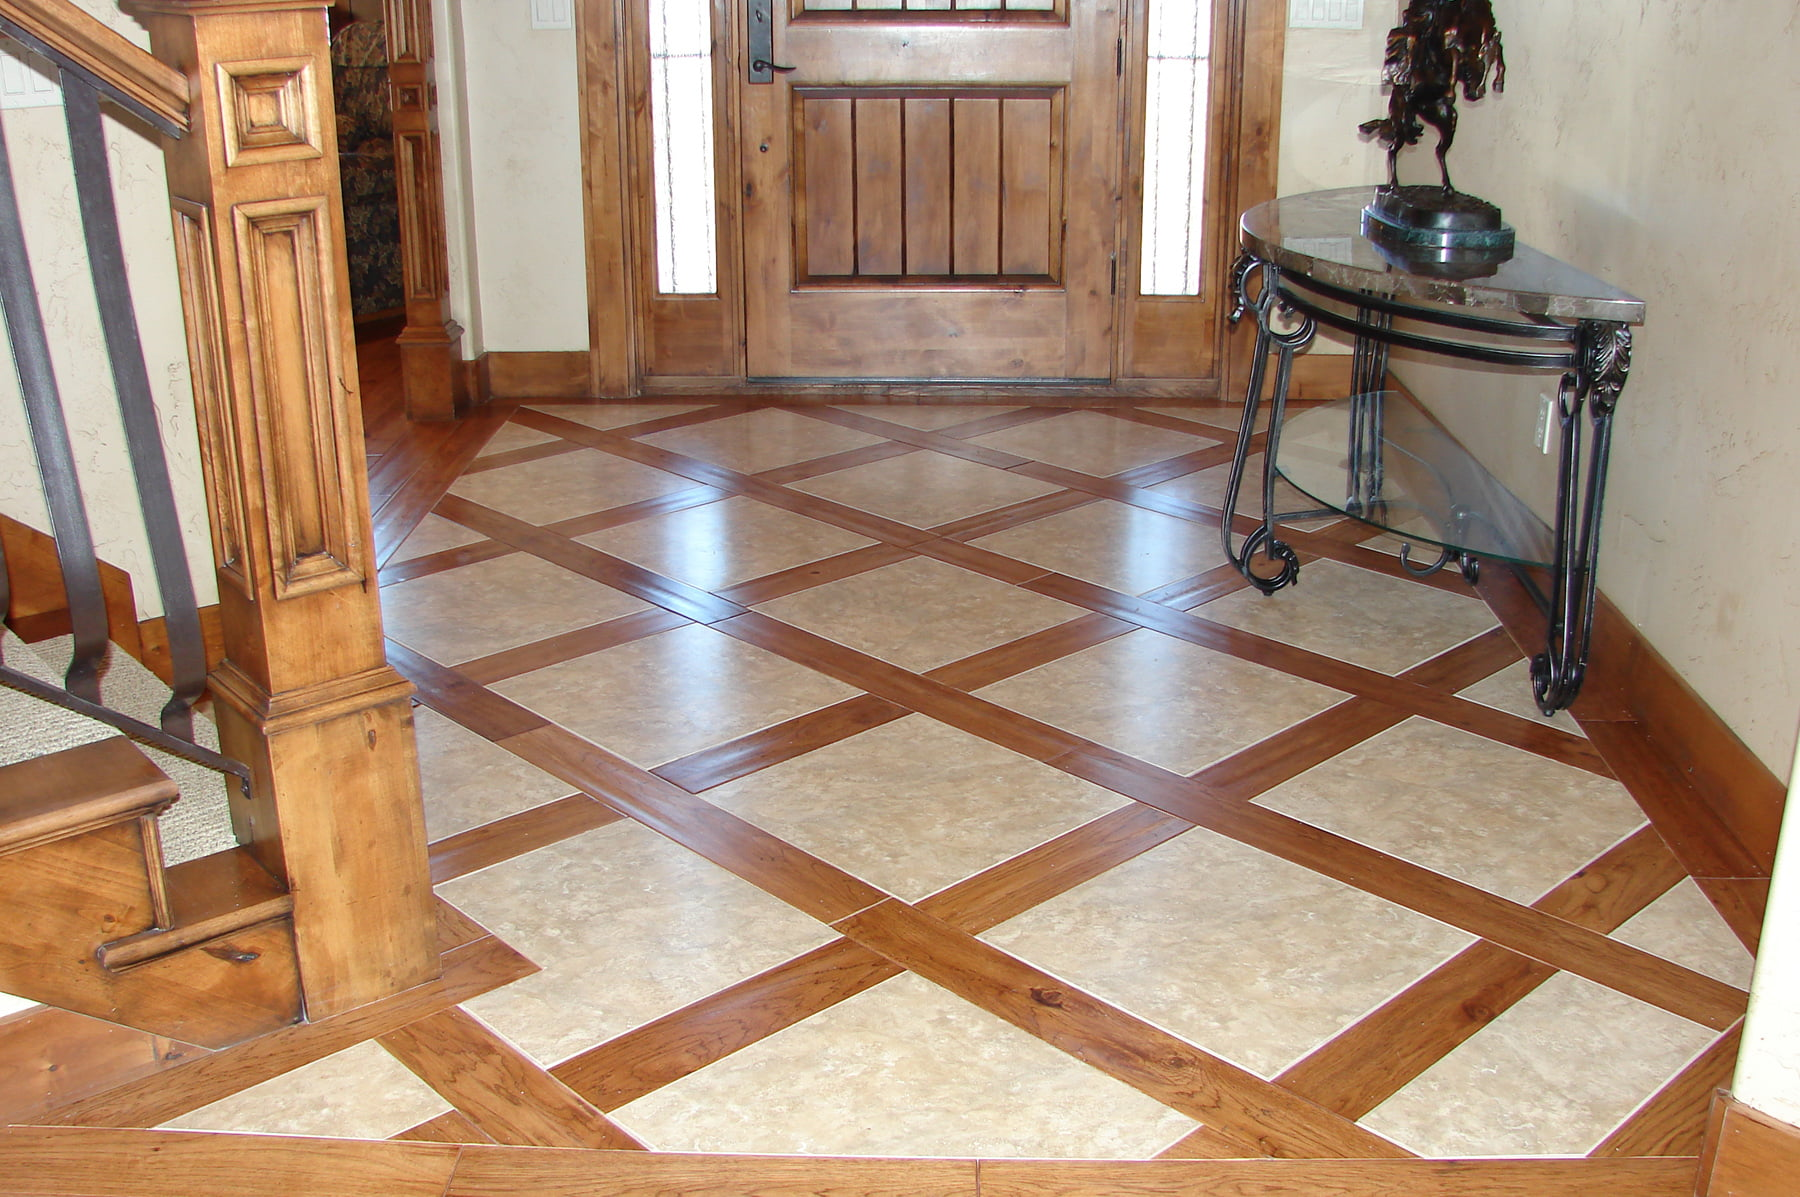 hardwood-floor-with-tile-3